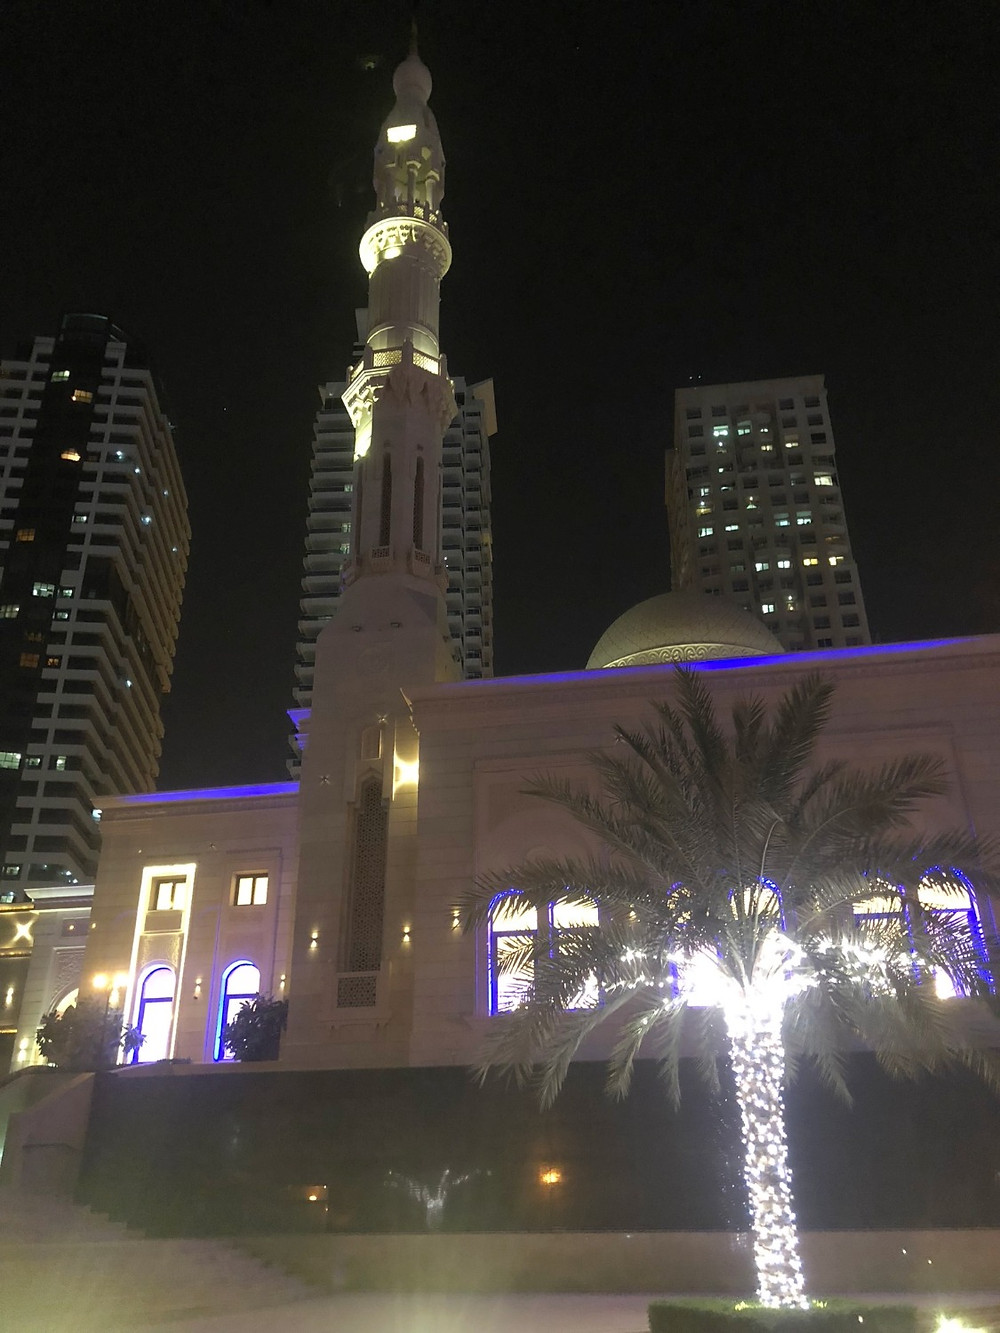 The same mosque lit up at night